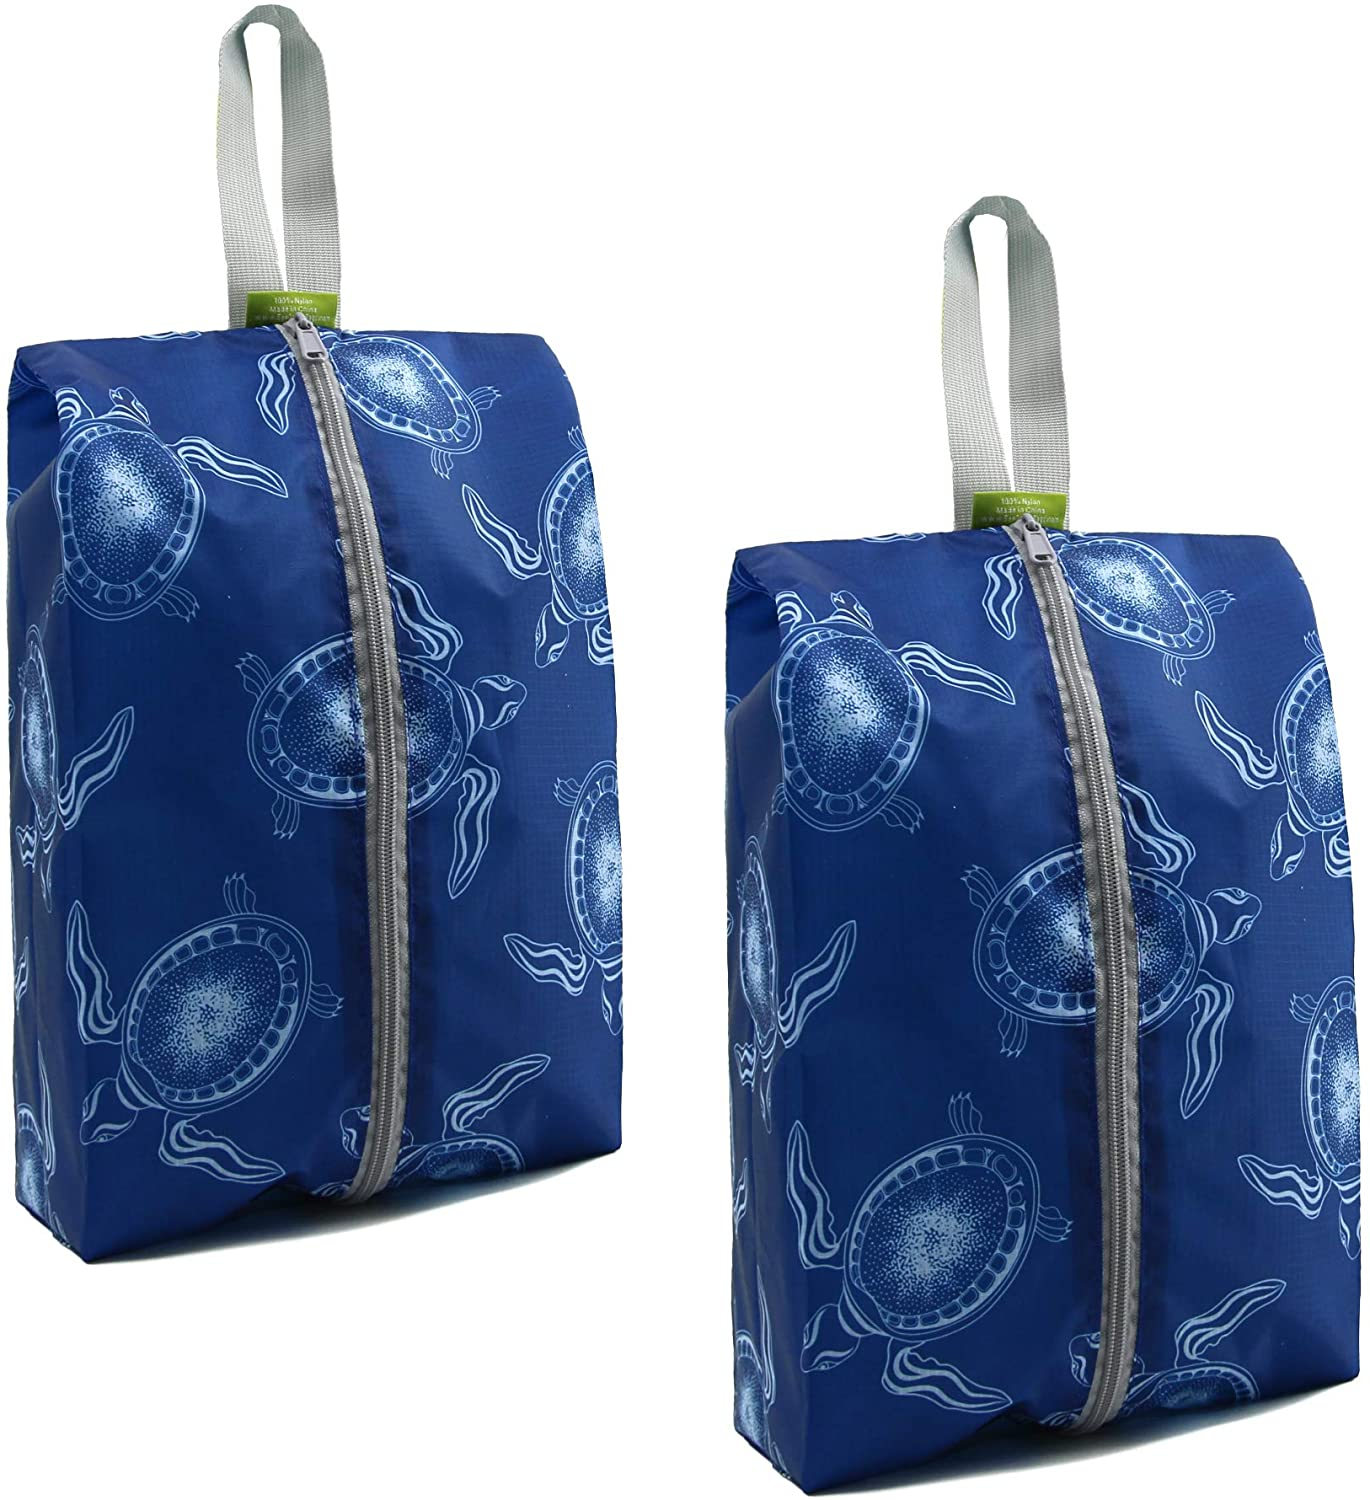 Blue Sea Turtle Travel Shoe Organizer Pouch 2 Pack with Zipper Sturdy Machine Washable Storage Gym Packing Shoe Bags for Women Men Portable Shoe Bags